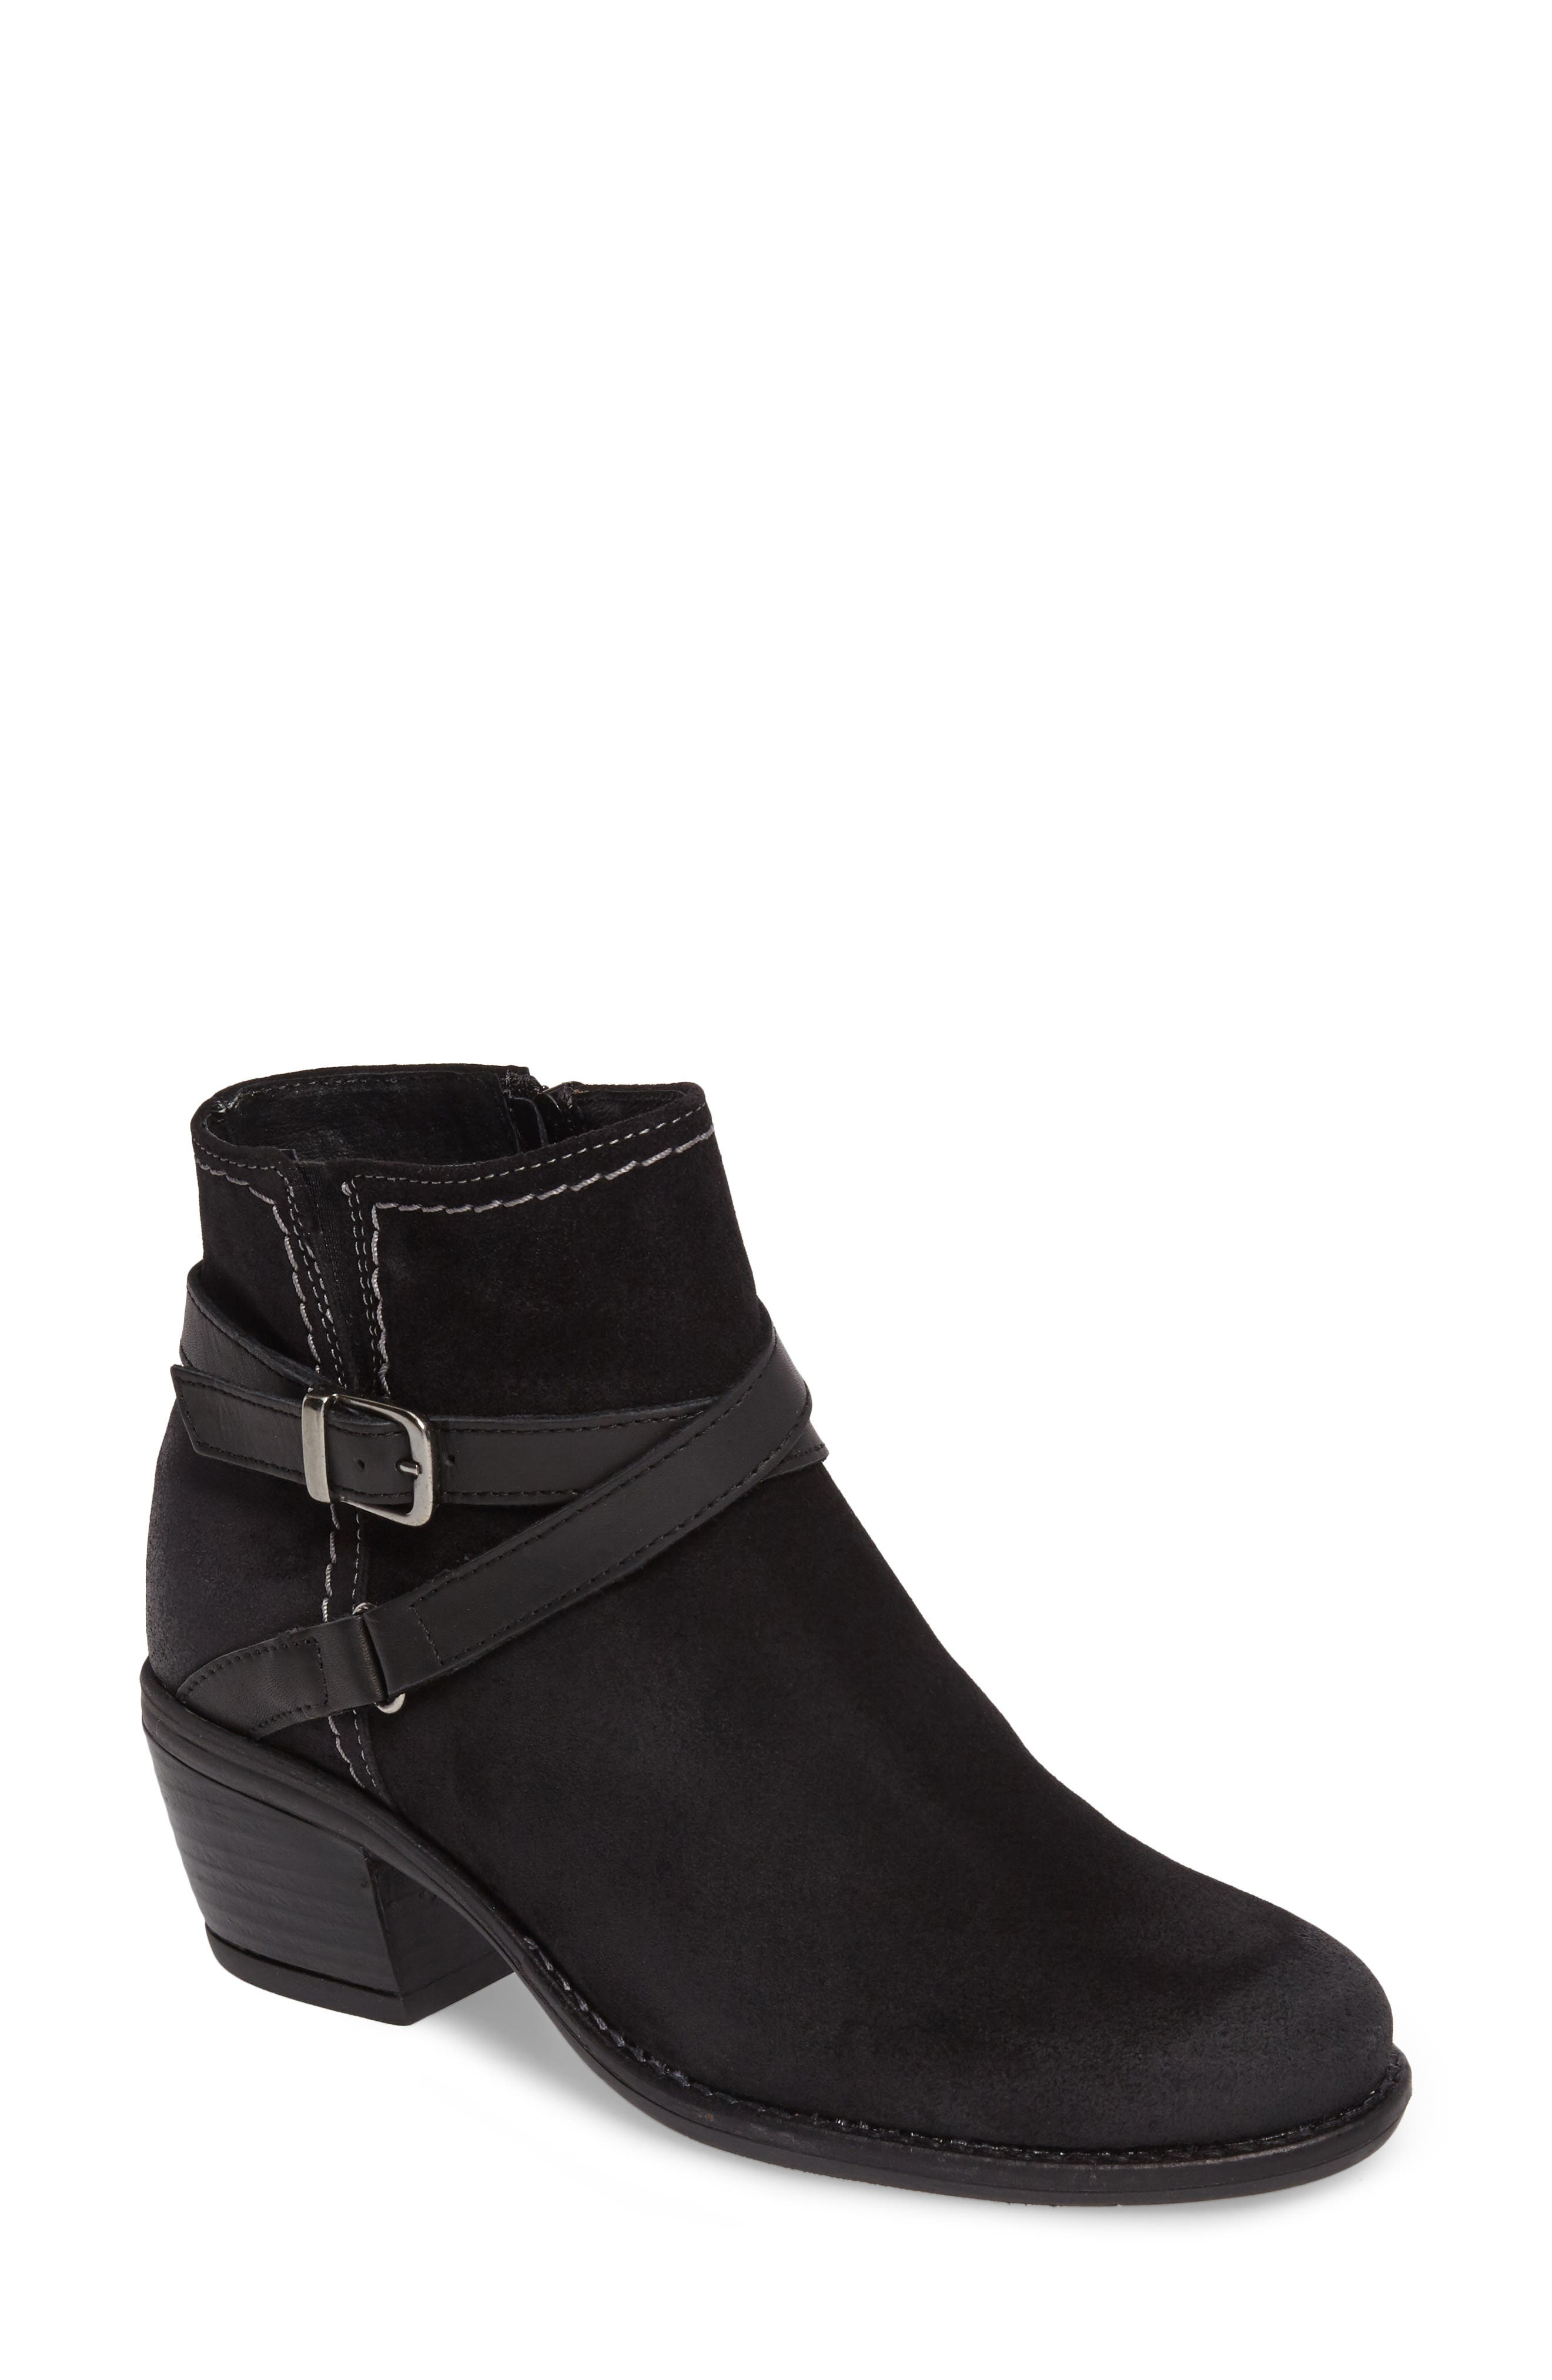 Bos. & Co. Greenville Waterproof Bootie, Black